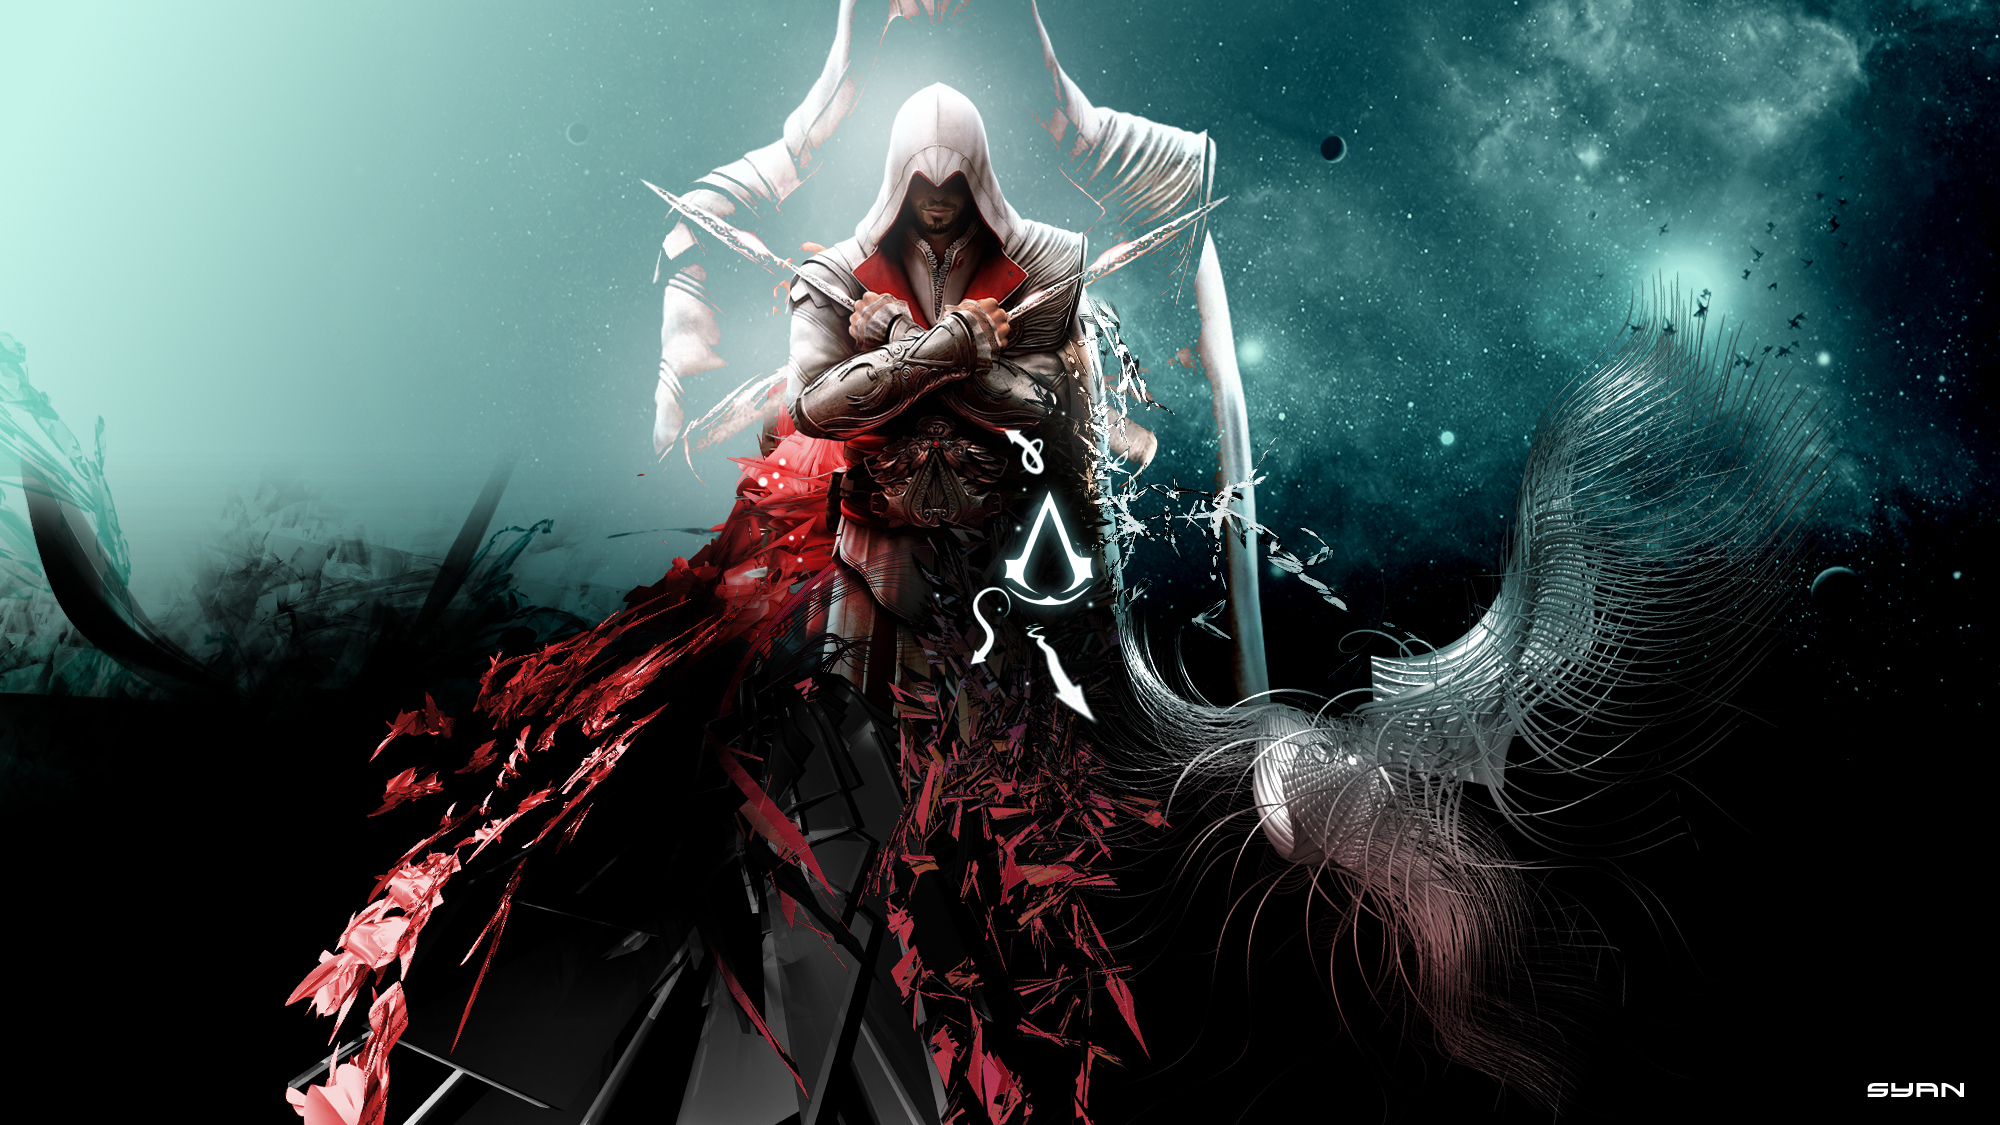 Free Download Assassins Creed 3 Wallpaper Hdgames Assassins